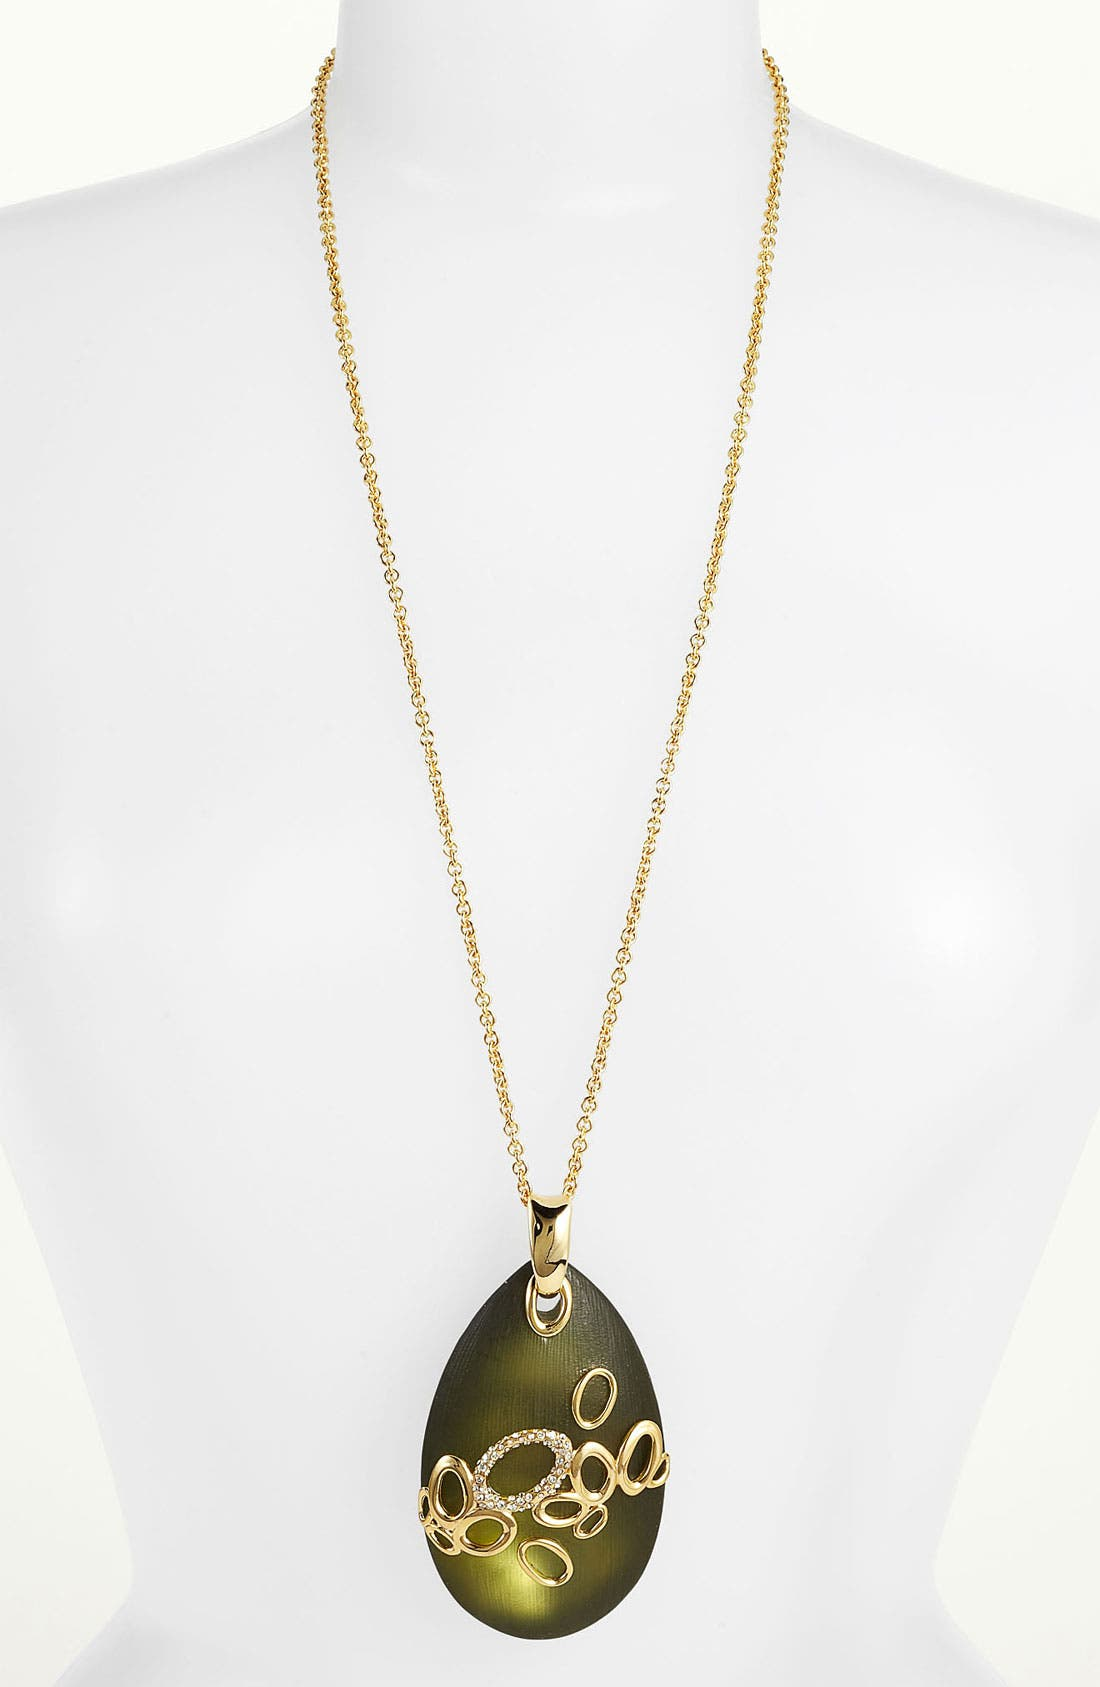 Alternate Image 1 Selected - Alexis Bittar 'Modular' Pendant Necklace